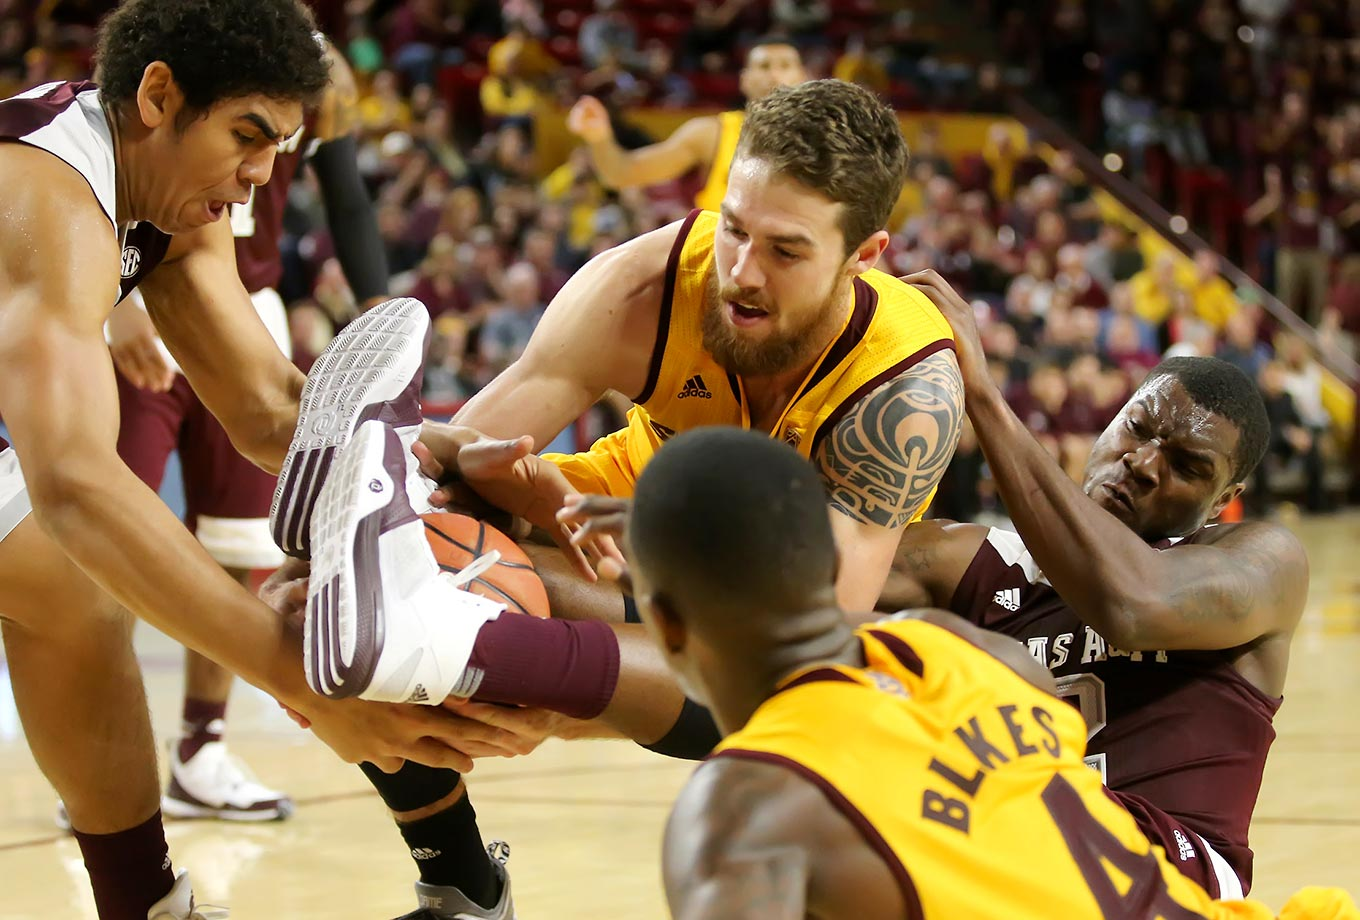 Jalen Jones of Texas A&M used both feet to clamp the loose ball away from Eric Jacobson of ASU.